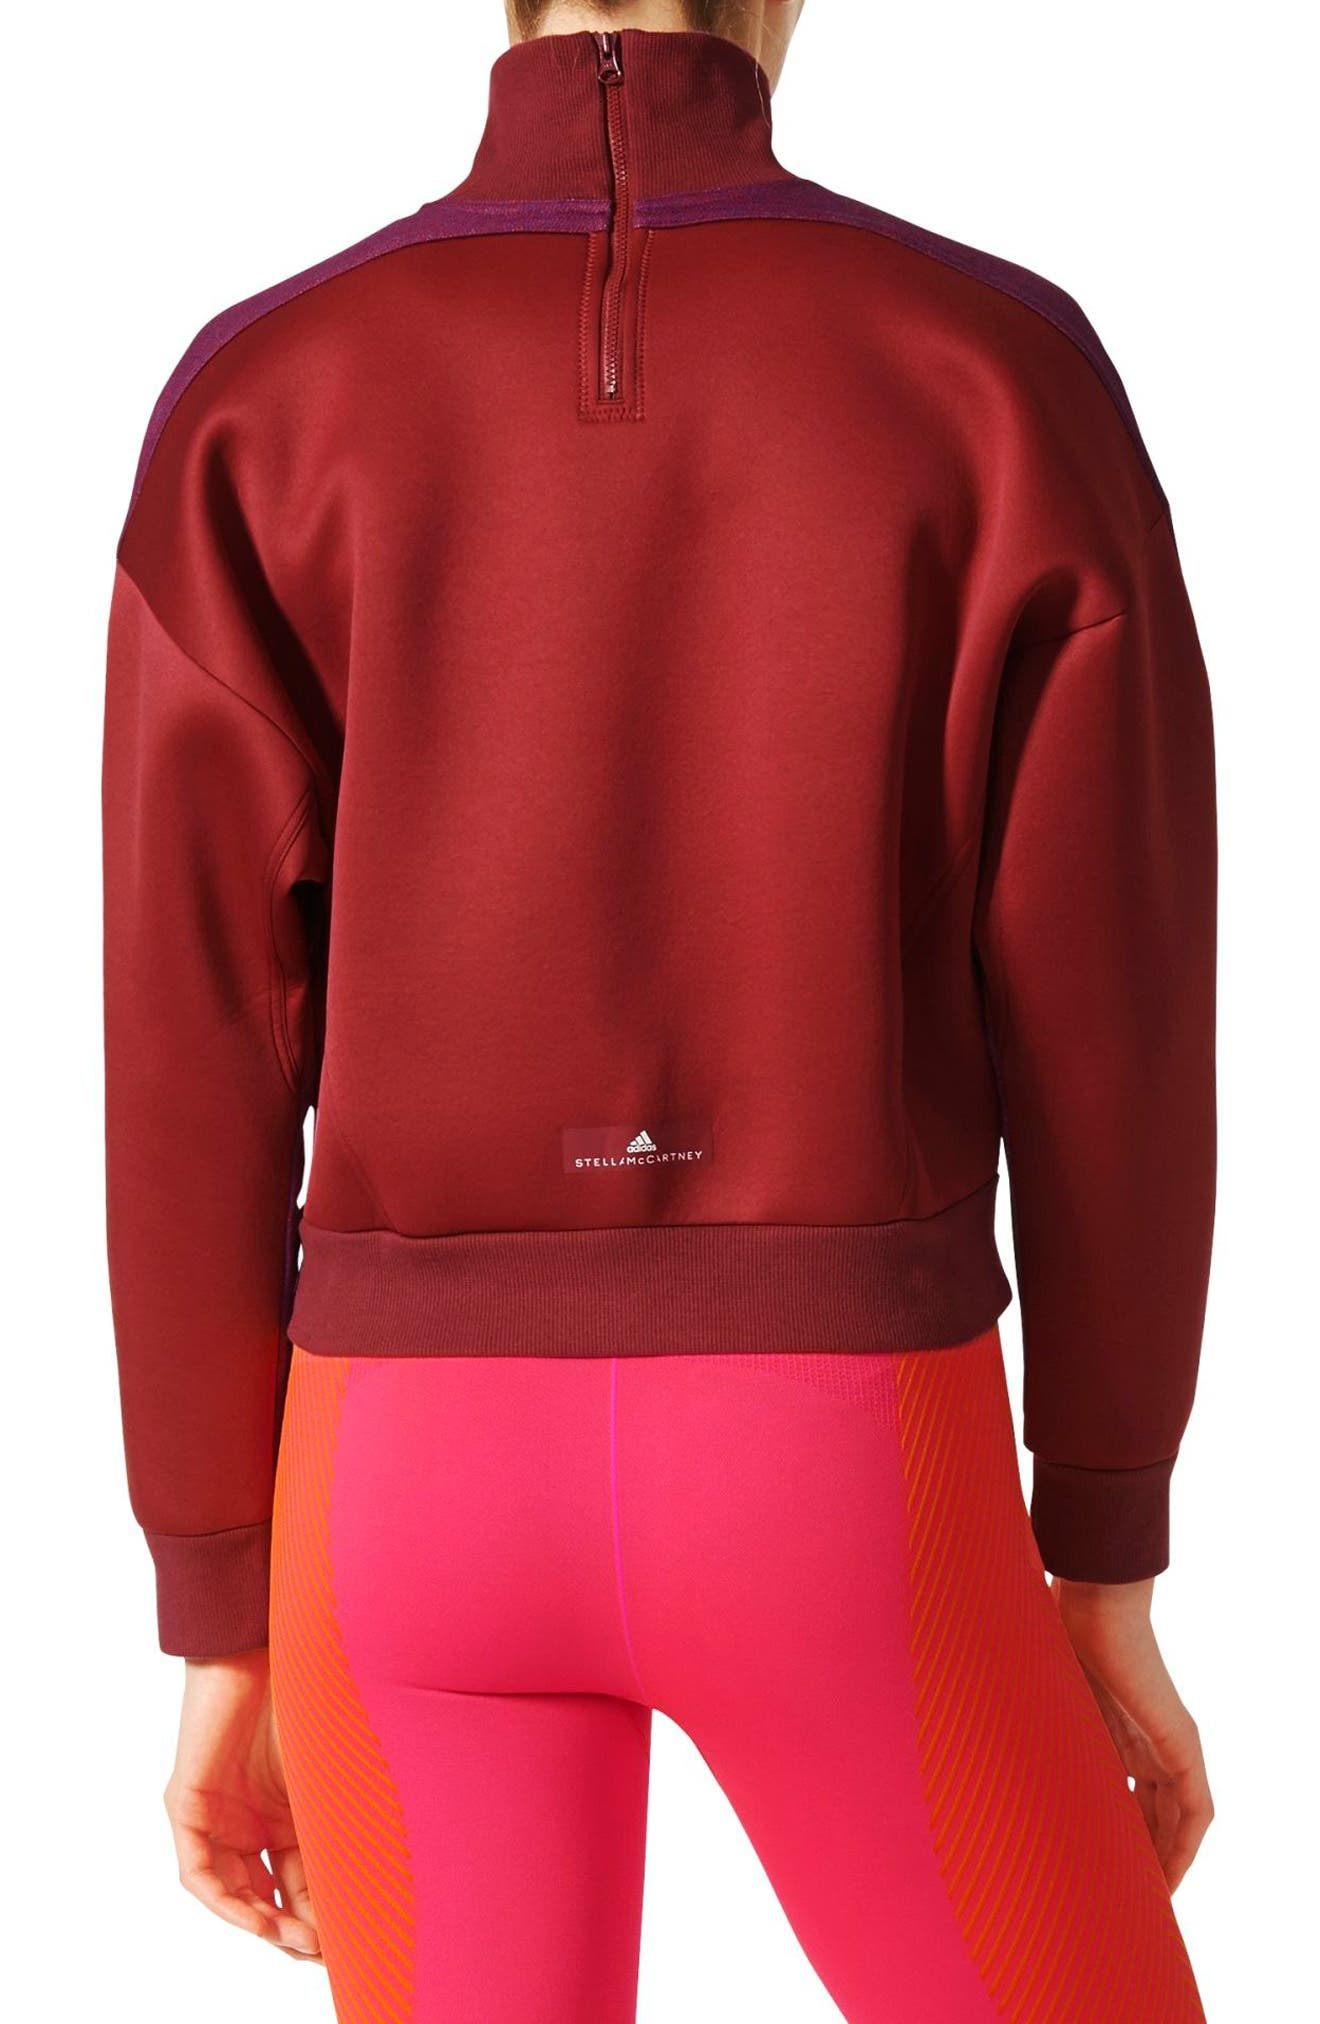 Yoga Turtleneck Sweatshirt,                             Alternate thumbnail 2, color,                             599